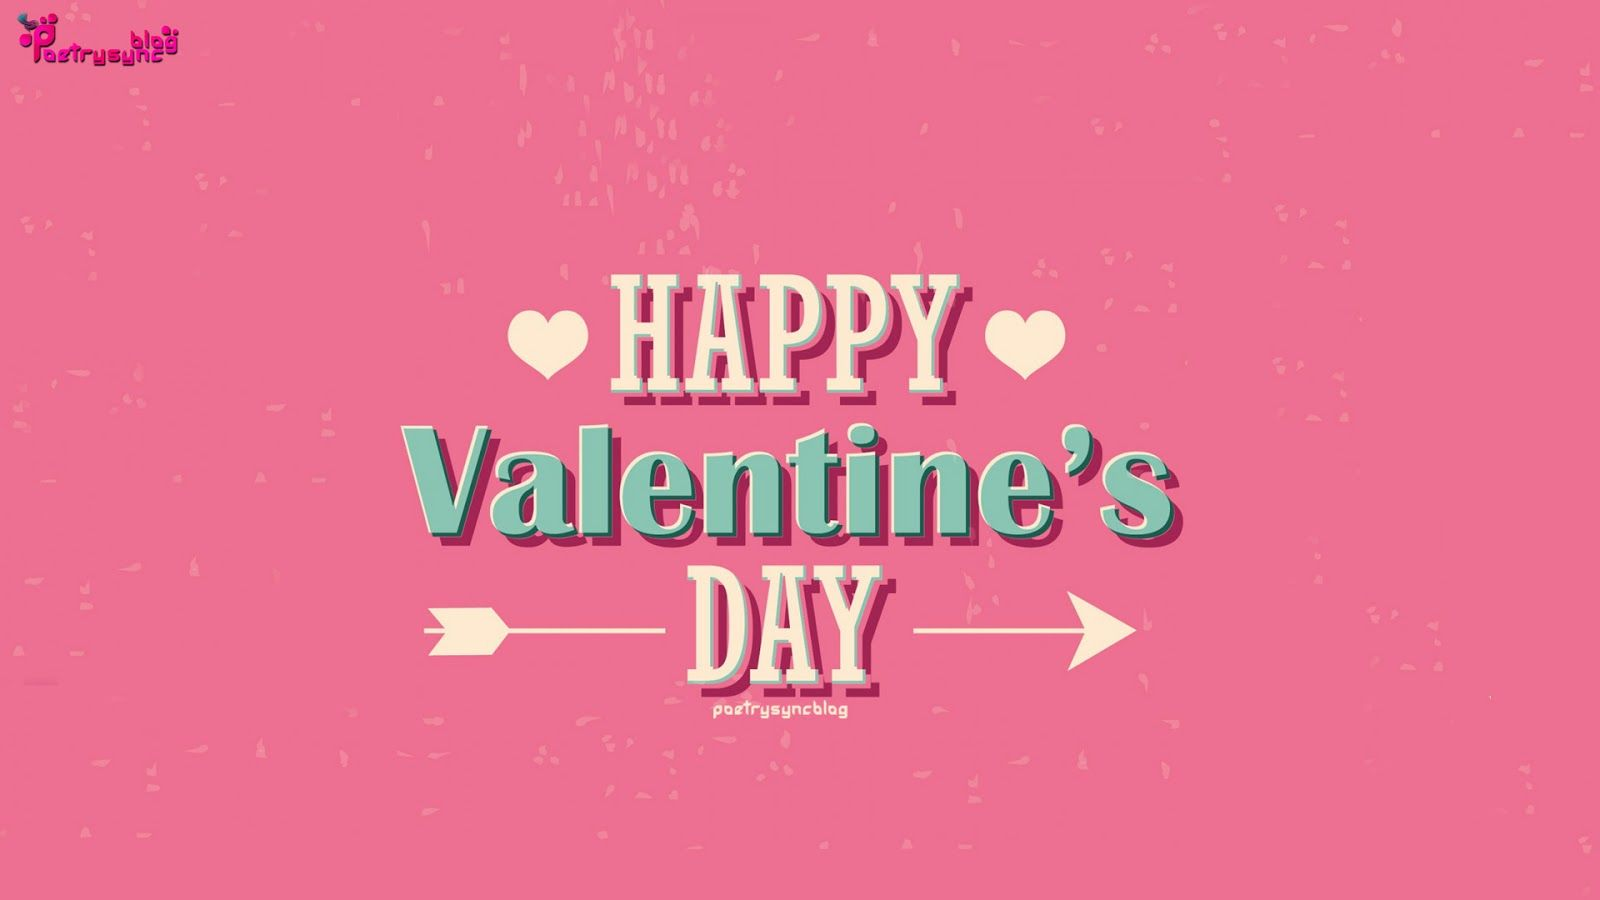 Cute Happy Valentines Day Wallpaper Pictures Photos And Images For